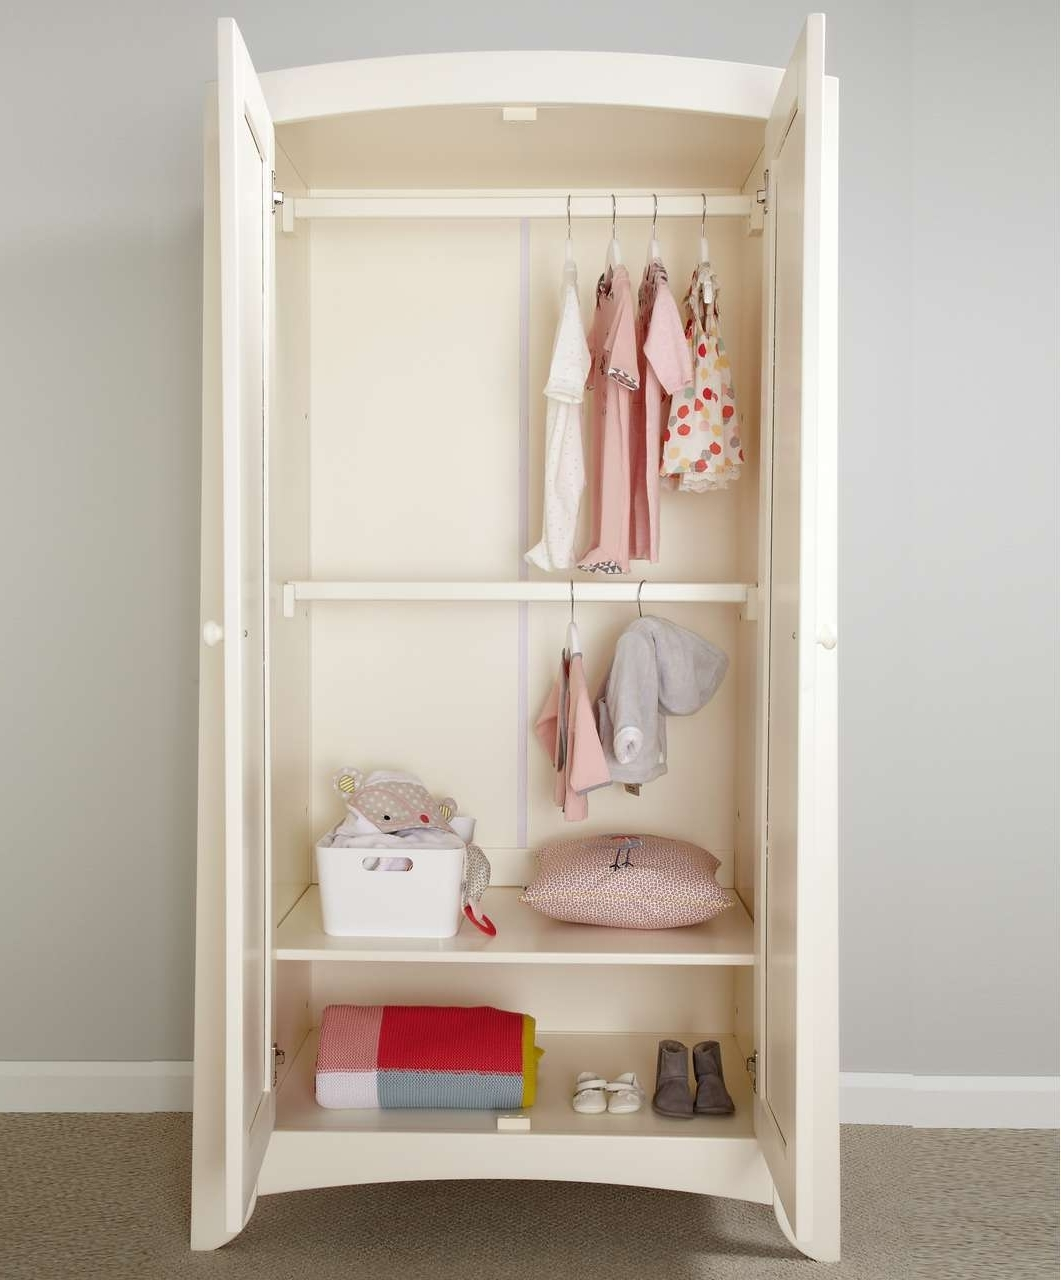 Interior With Regard To Wardrobes For Baby Clothes (Gallery 6 of 15)